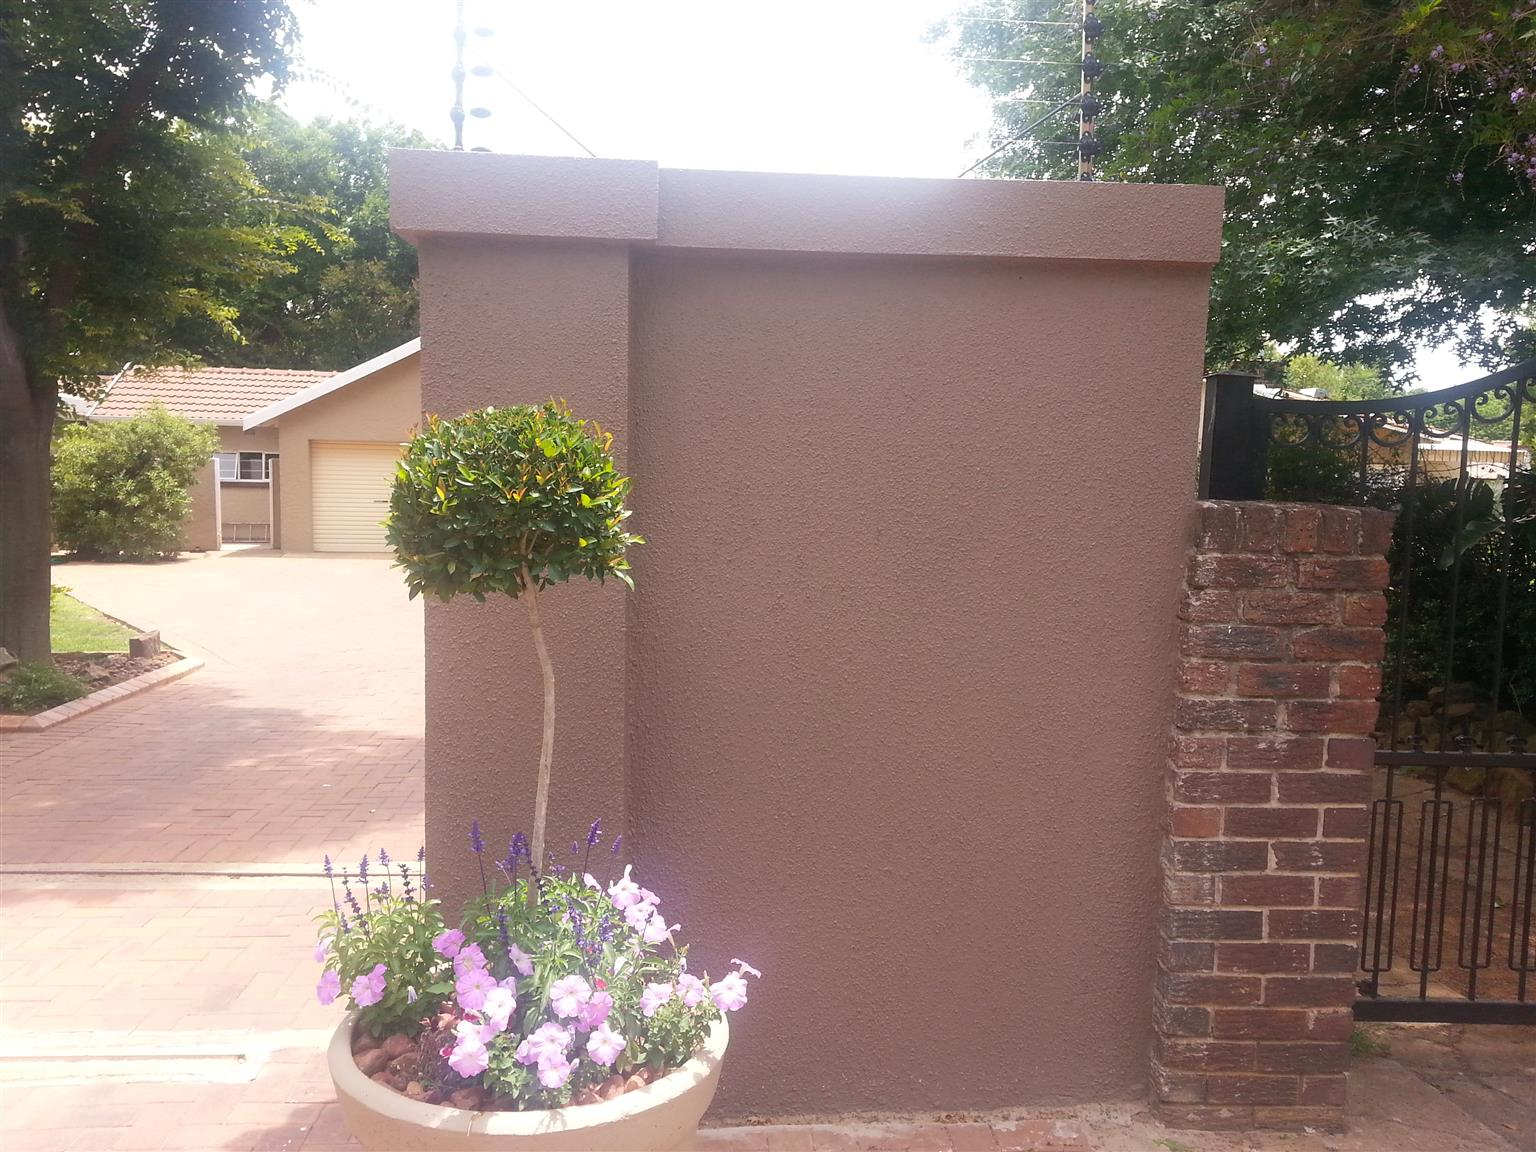 Precast extensions 2 slabs up R 390 Per section material and labour included